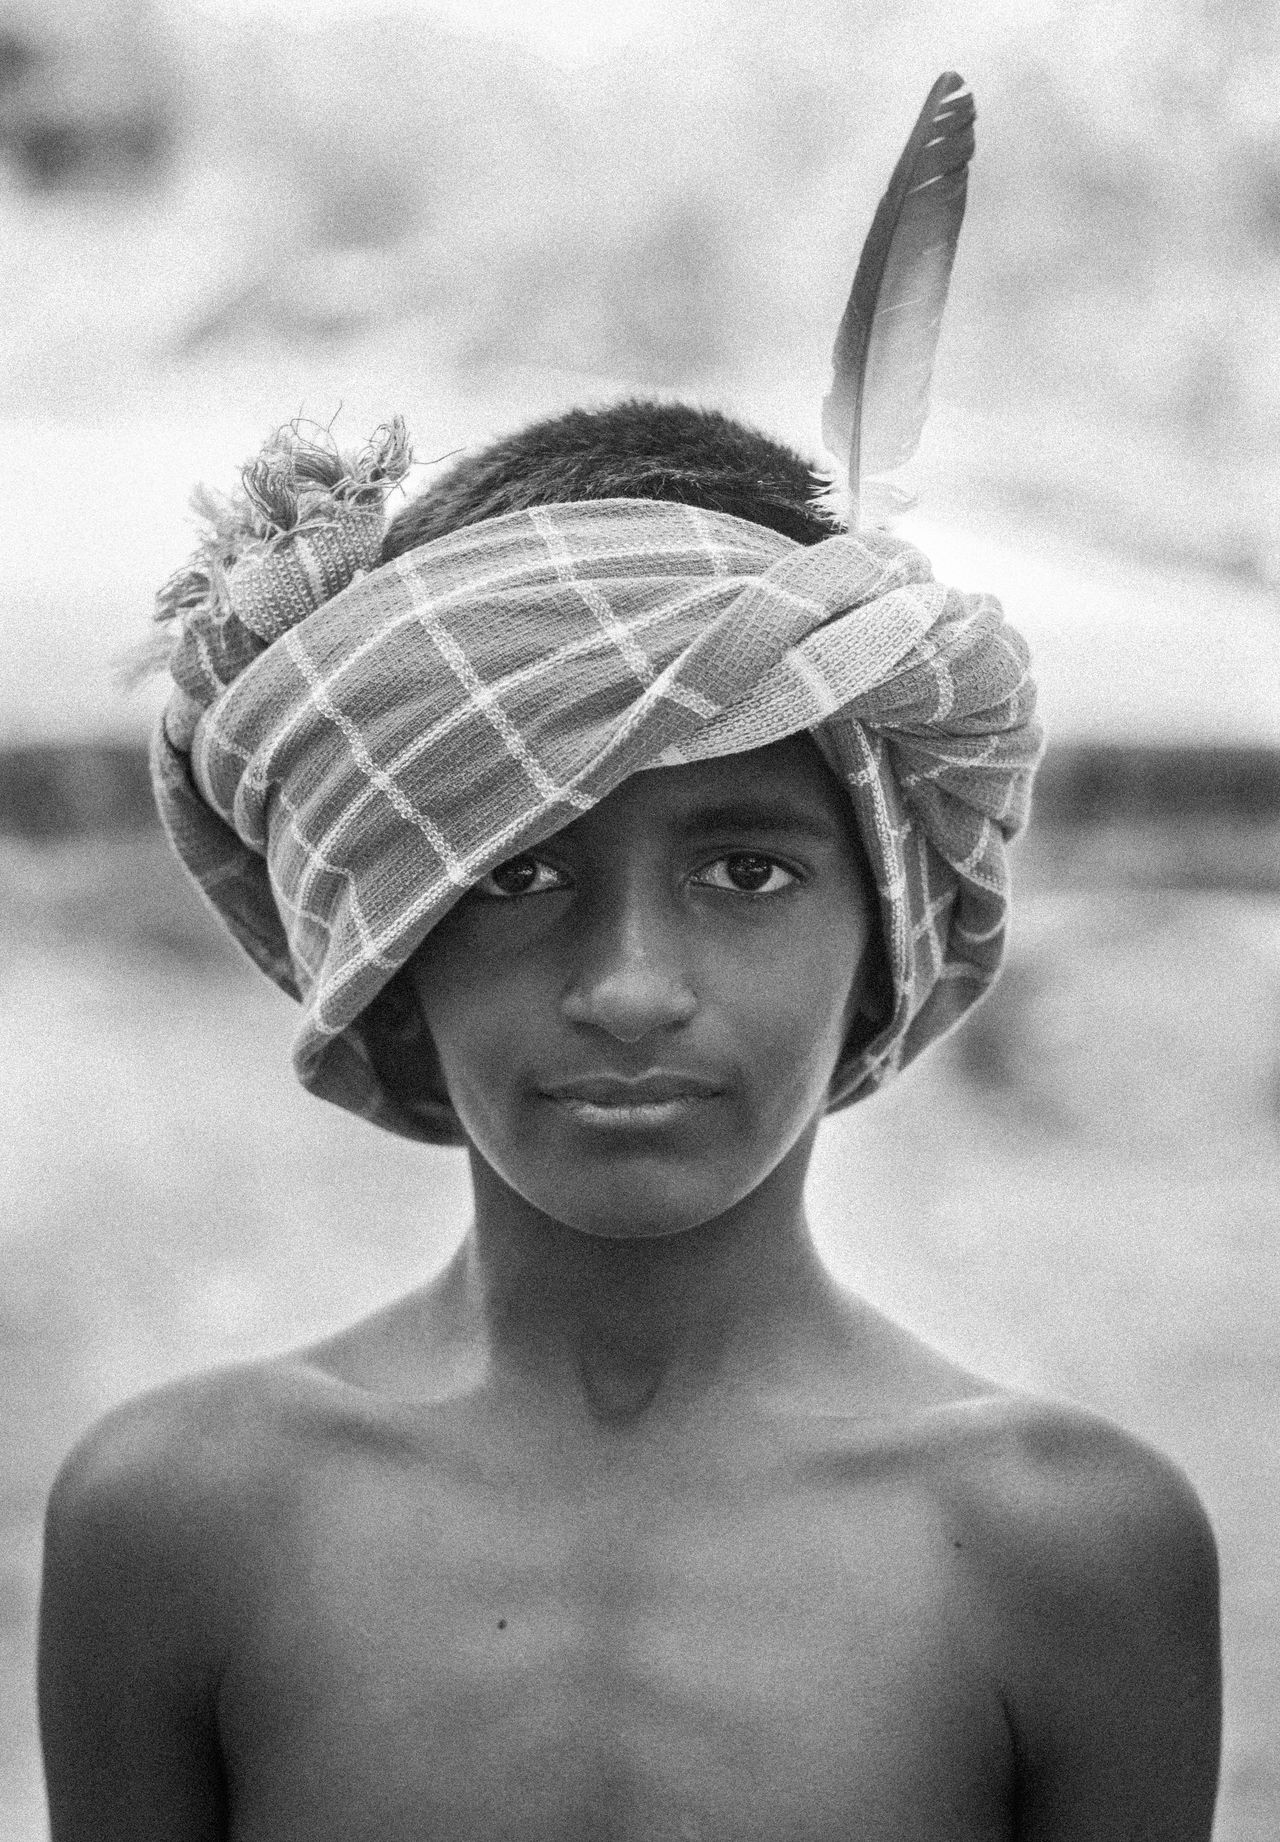 Black And White Blackandwhite Bnw Boy Close-up Countryside Day Farmer Feather  Live For The Story Lone Ranger Monochrome One Person Outdoors People Poor  Potrait Real People Rural Tonto Tribes Village